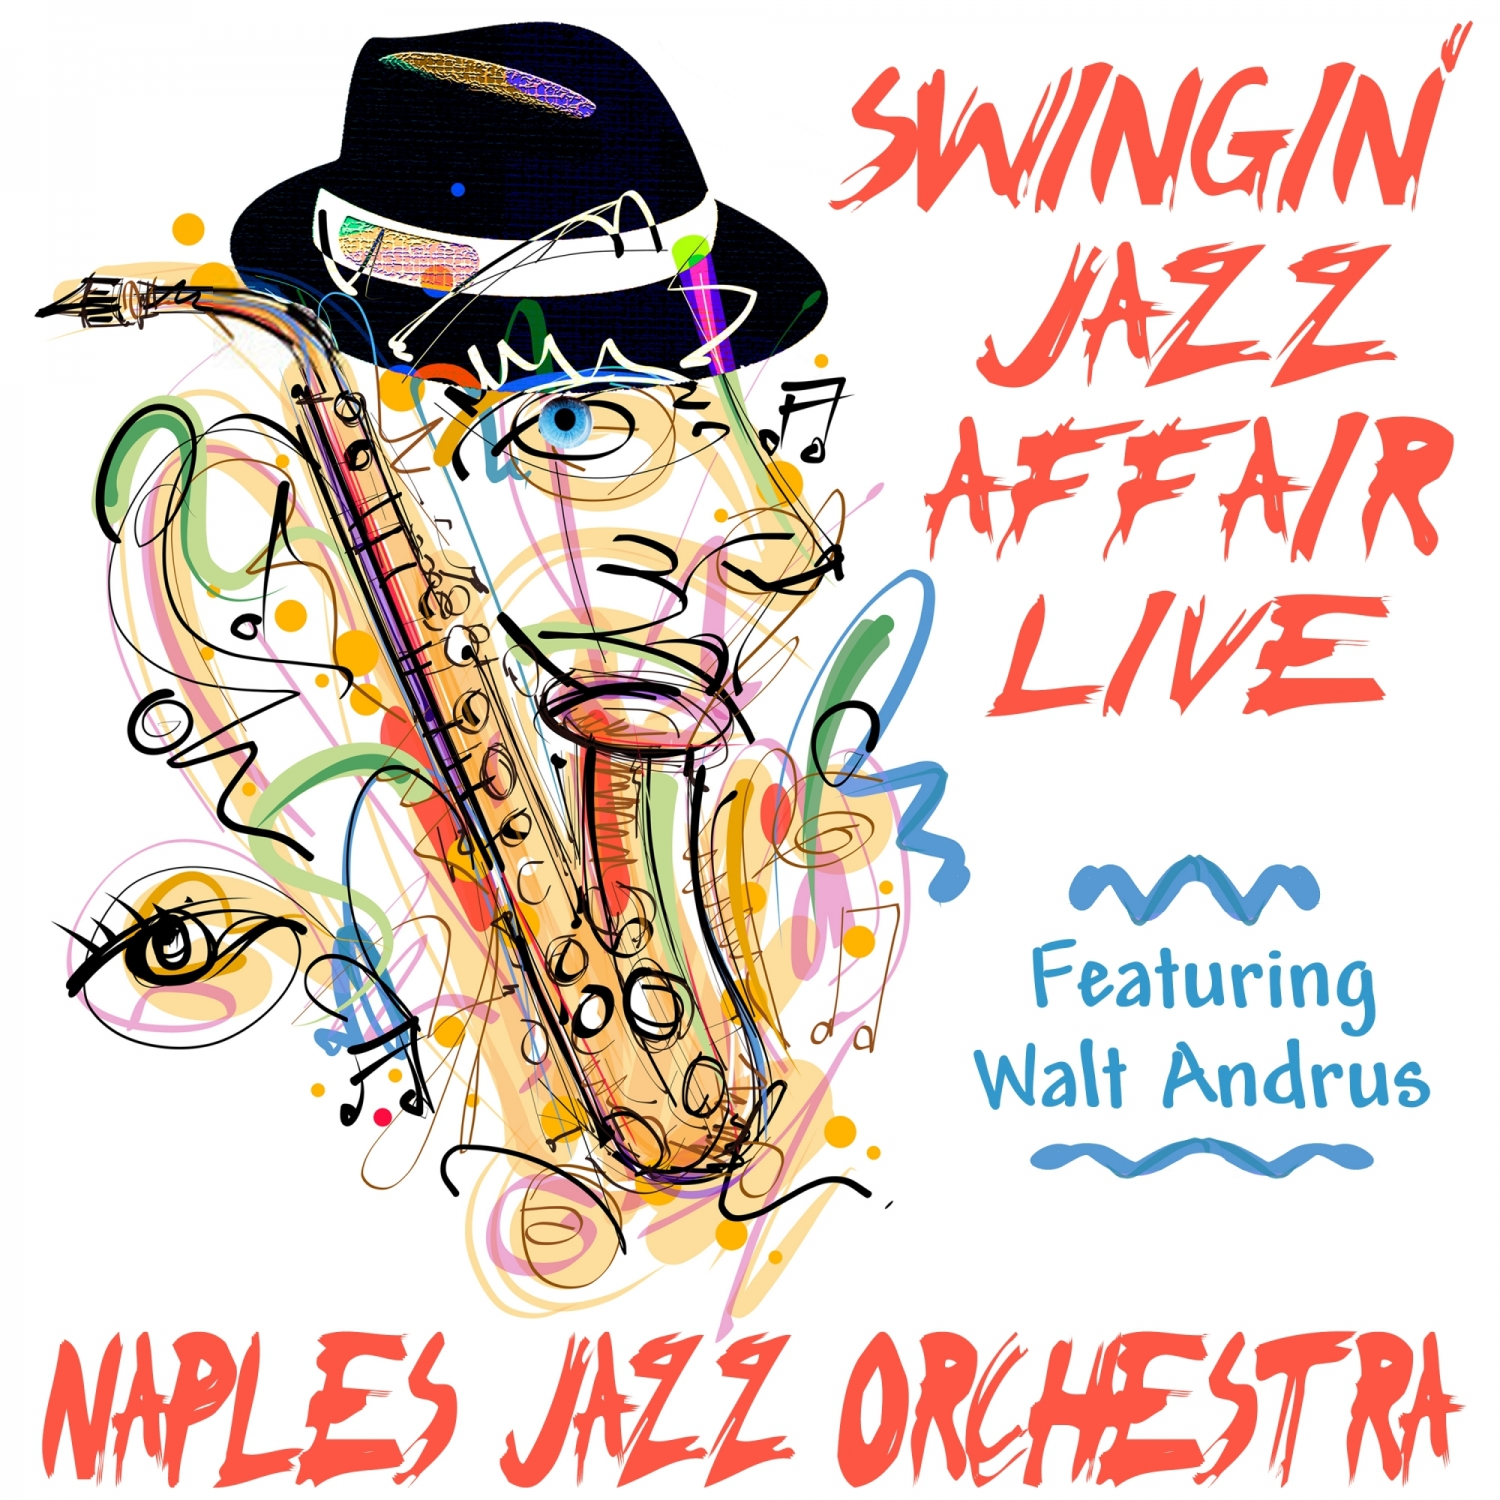 The Naples Jazz Orchestra  - Yellow Days  (feat. Walt Andrus)